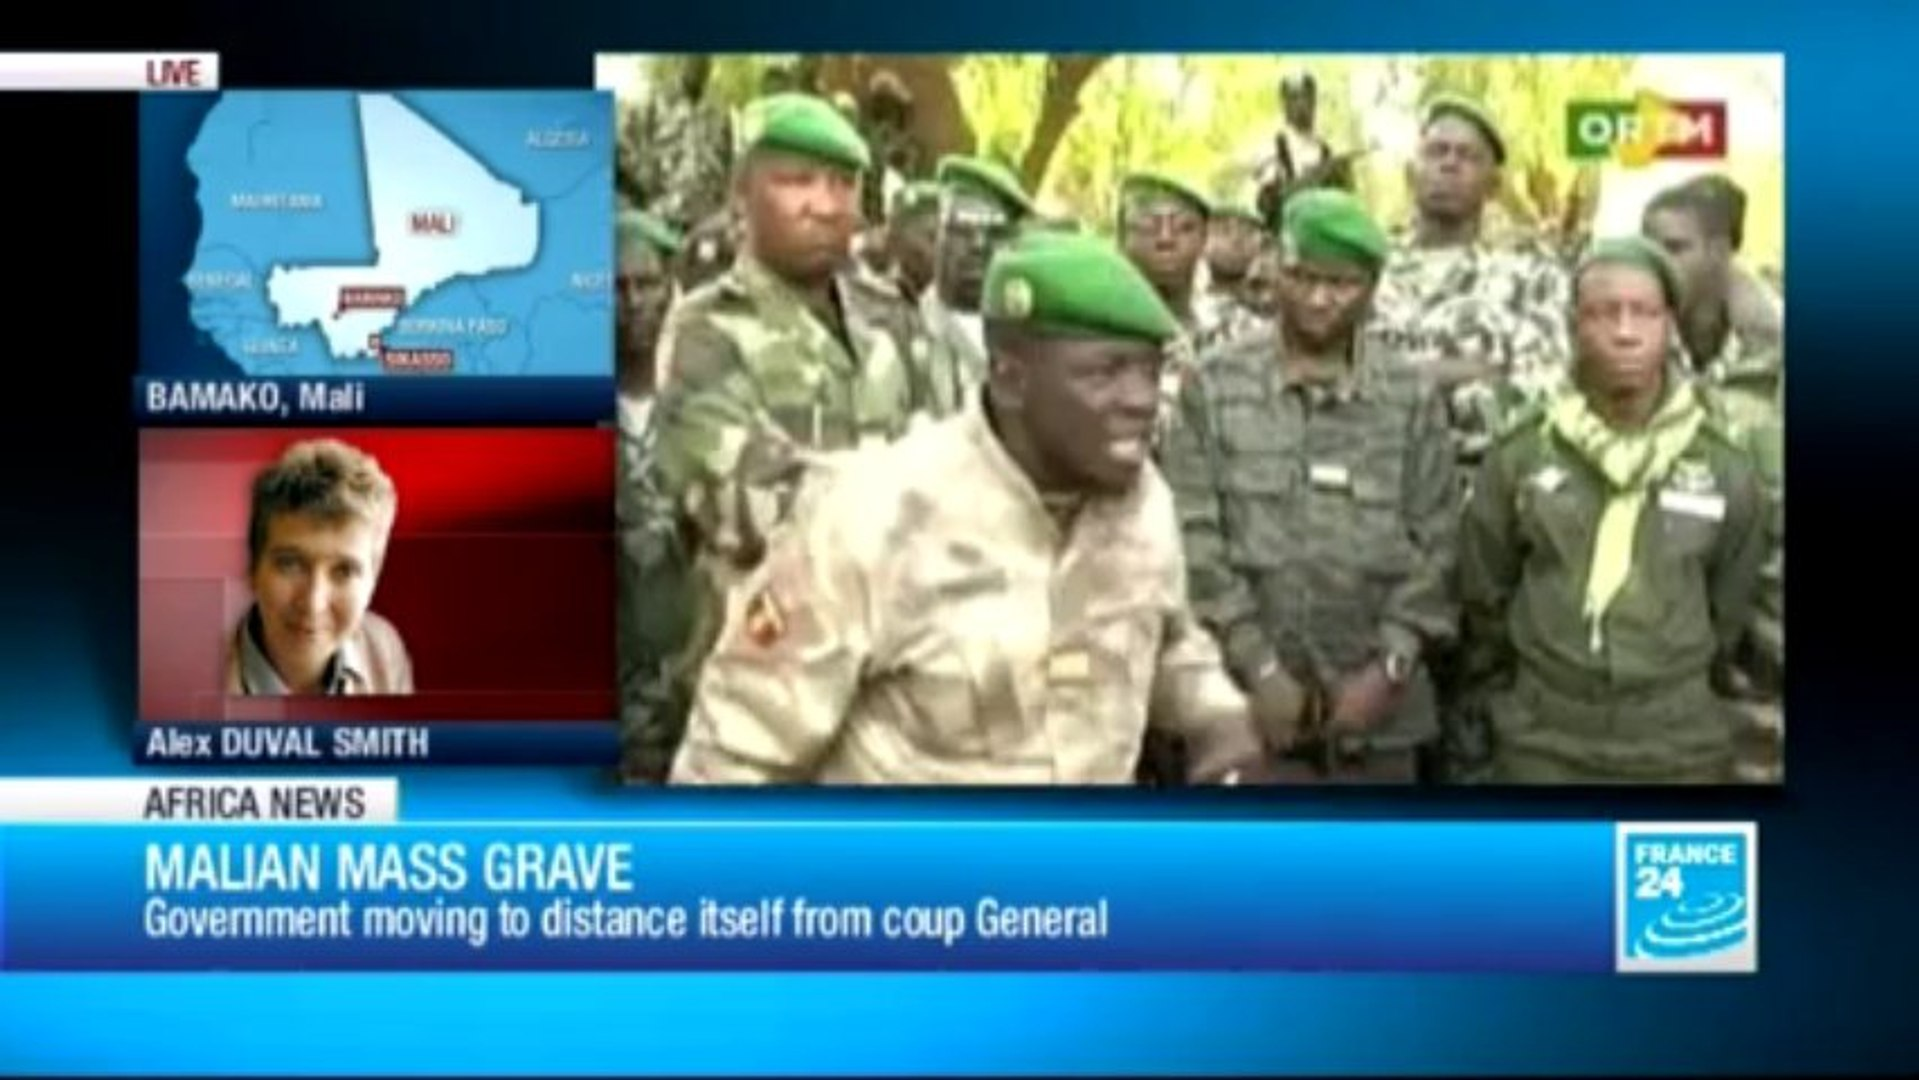 AFRICA NEWS - Bodies of Mali counter-coup soldiers found in mass grave